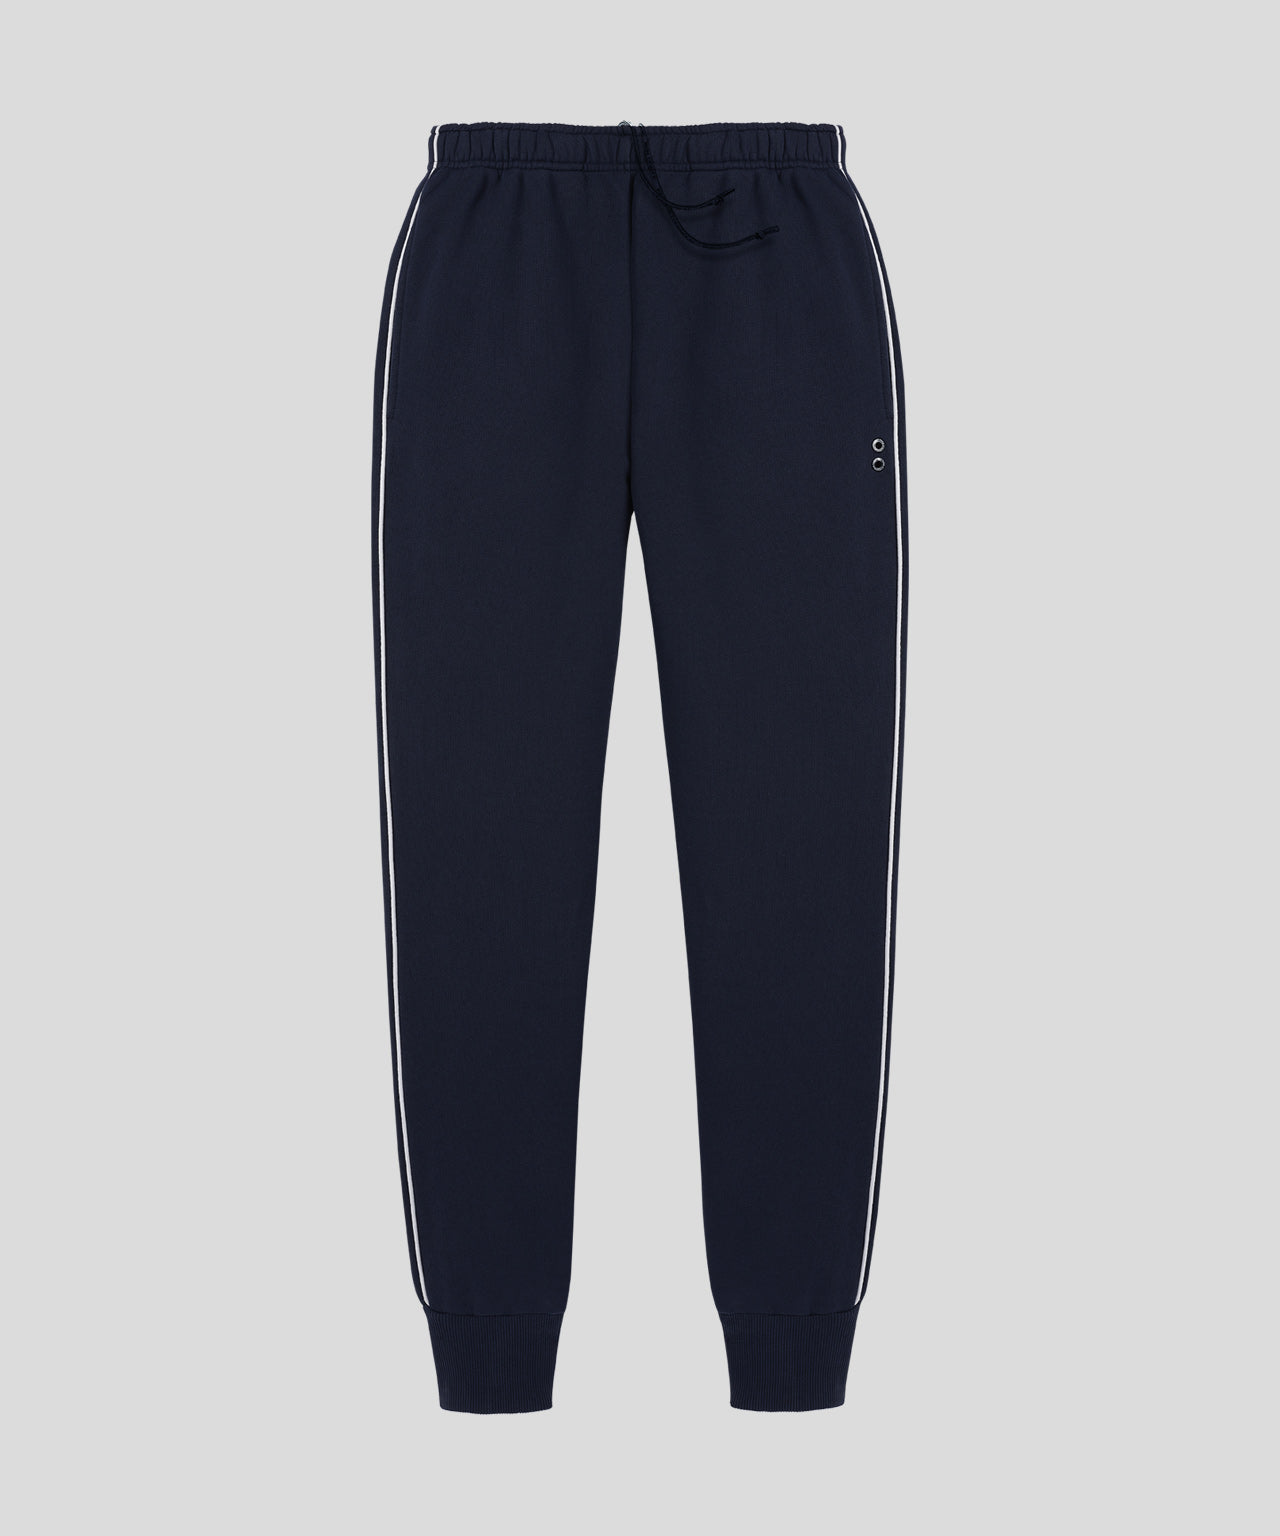 Lounge Pants Piping His For Her - navy/white